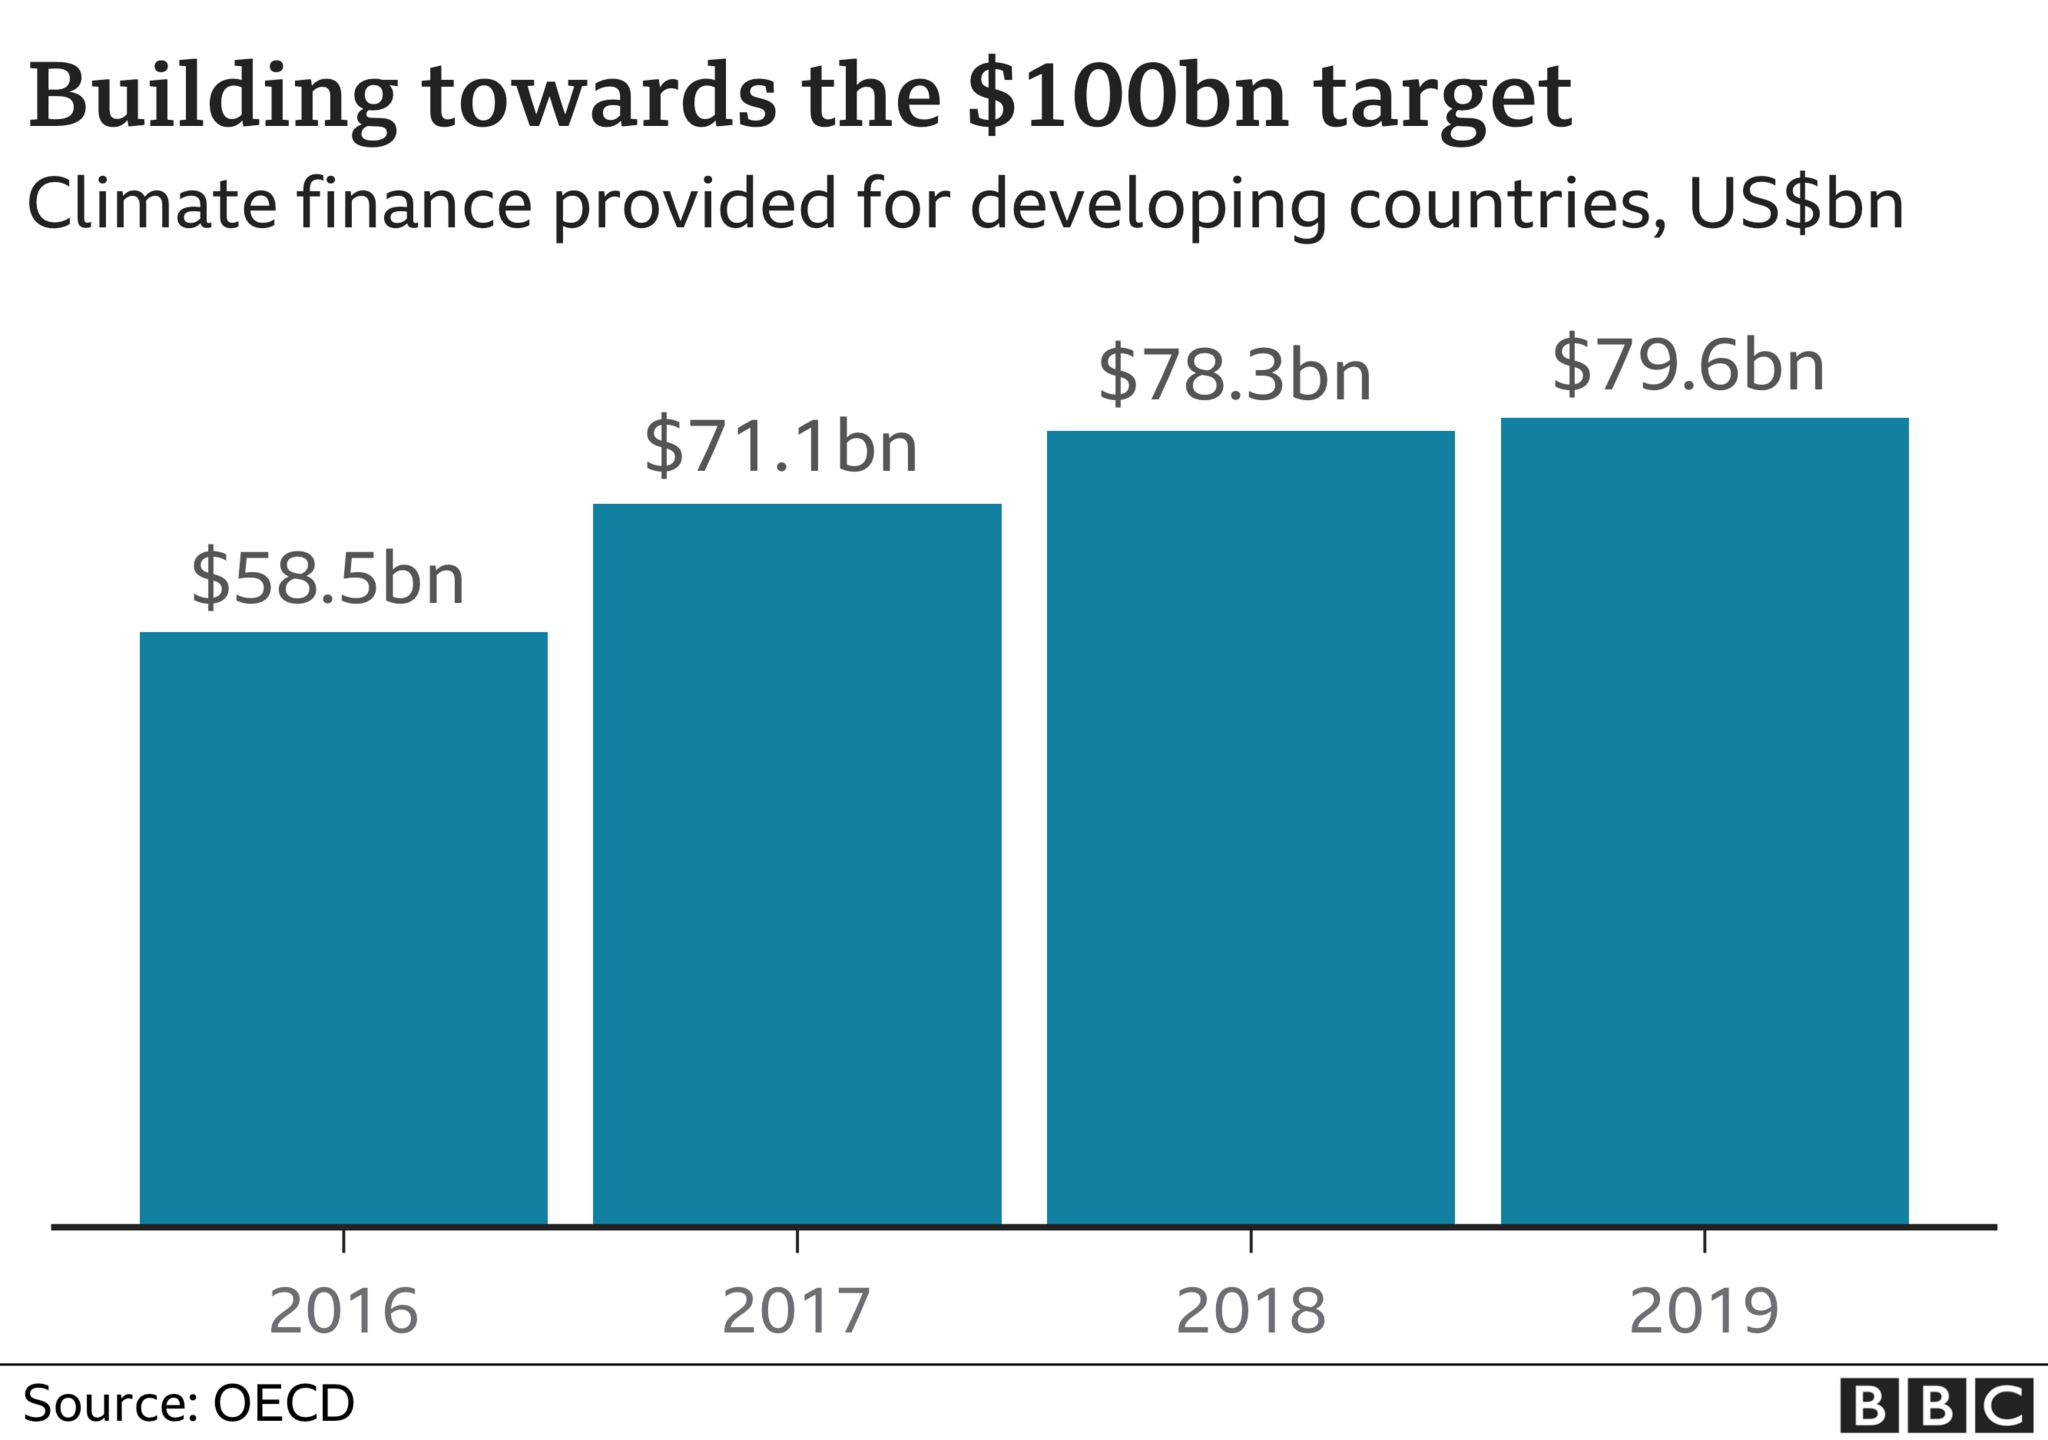 Chart showing the progress towards the $100bn target